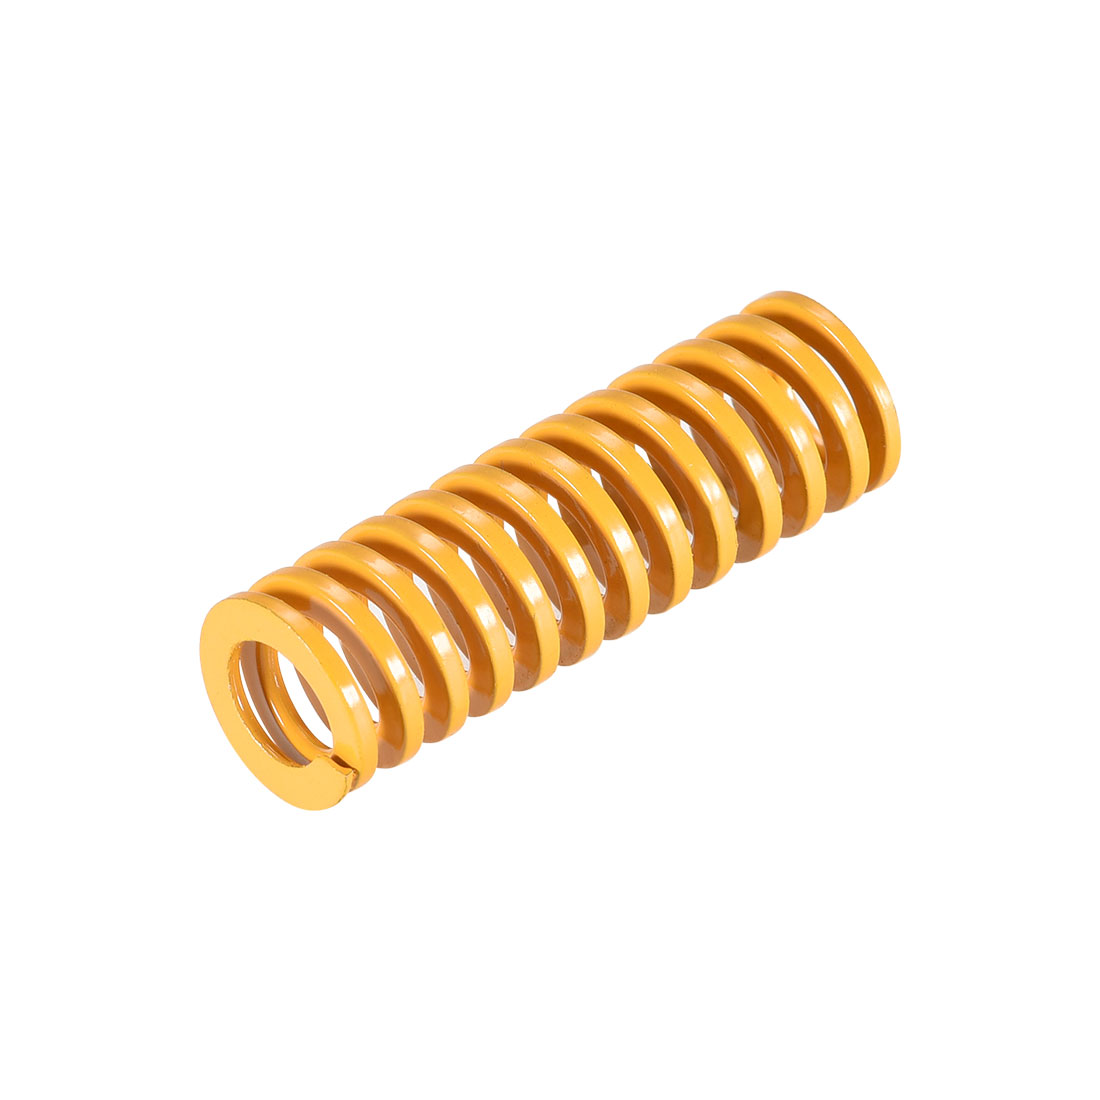 Heated Bed Springs for 3D Printer Light Load Compression Spring, 8 x 25 mm 4pcs